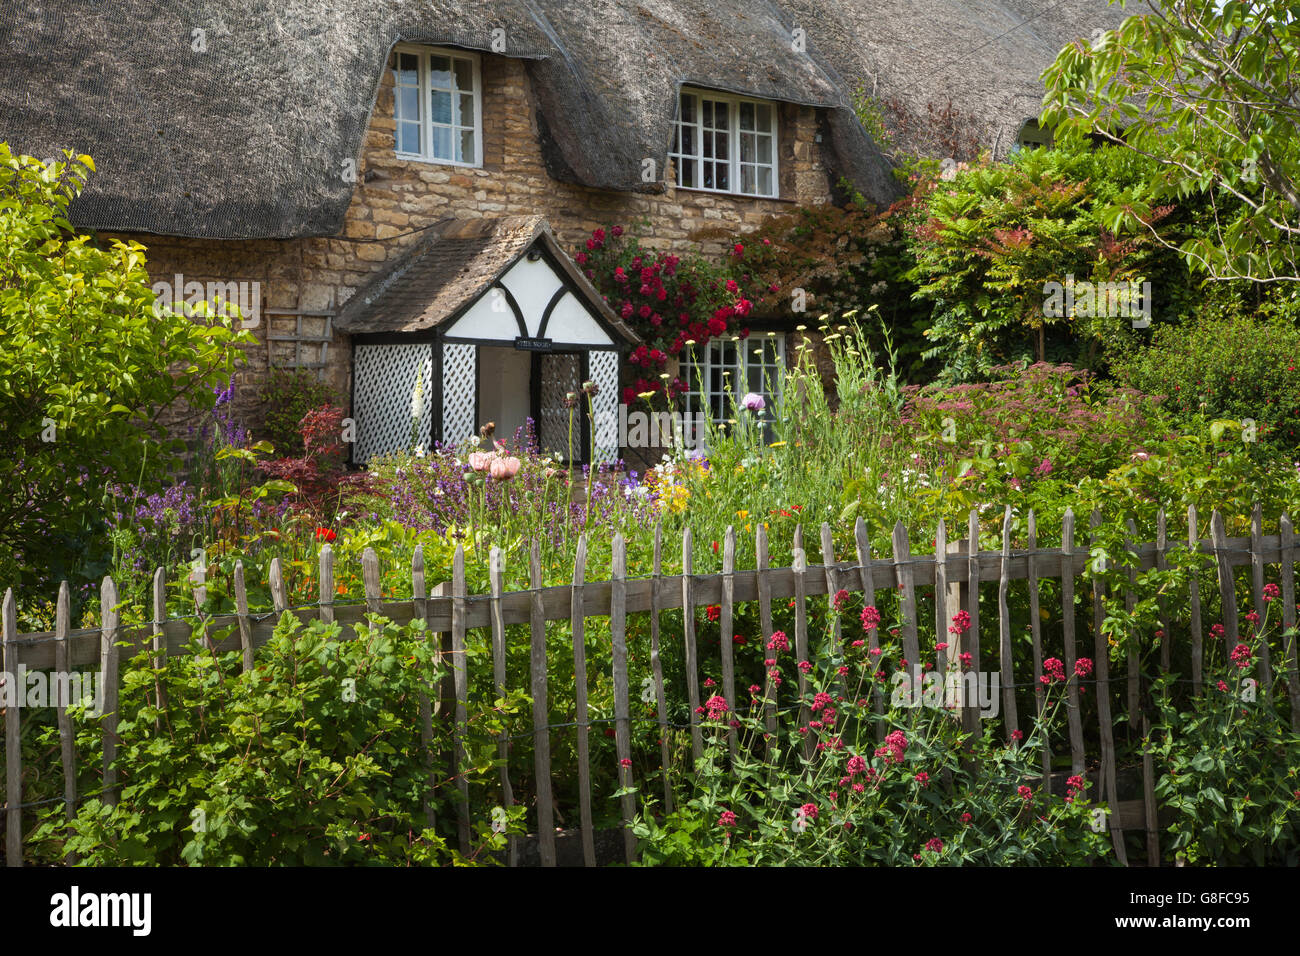 thatched cottage colourful garden stockfotos thatched cottage colourful garden bilder alamy. Black Bedroom Furniture Sets. Home Design Ideas